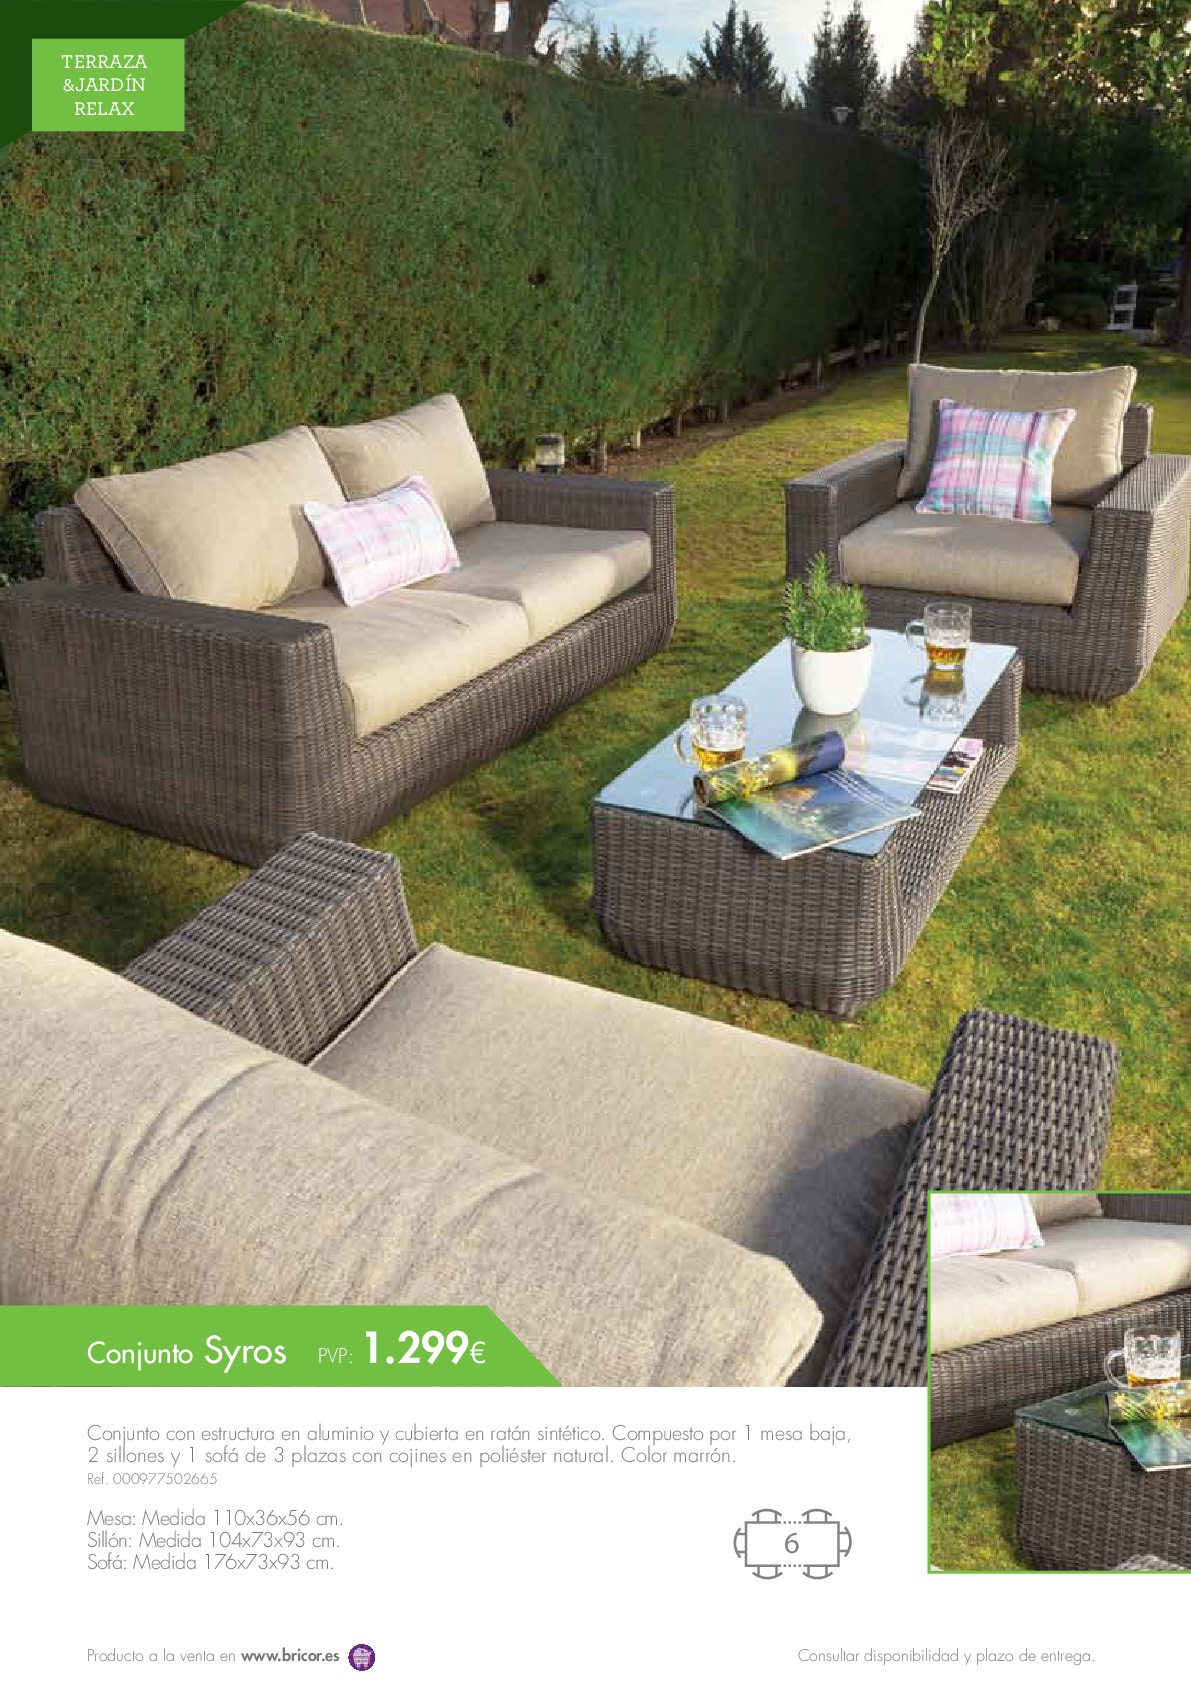 Bricor muebles jardin 201656 revista muebles for Muebles bricor